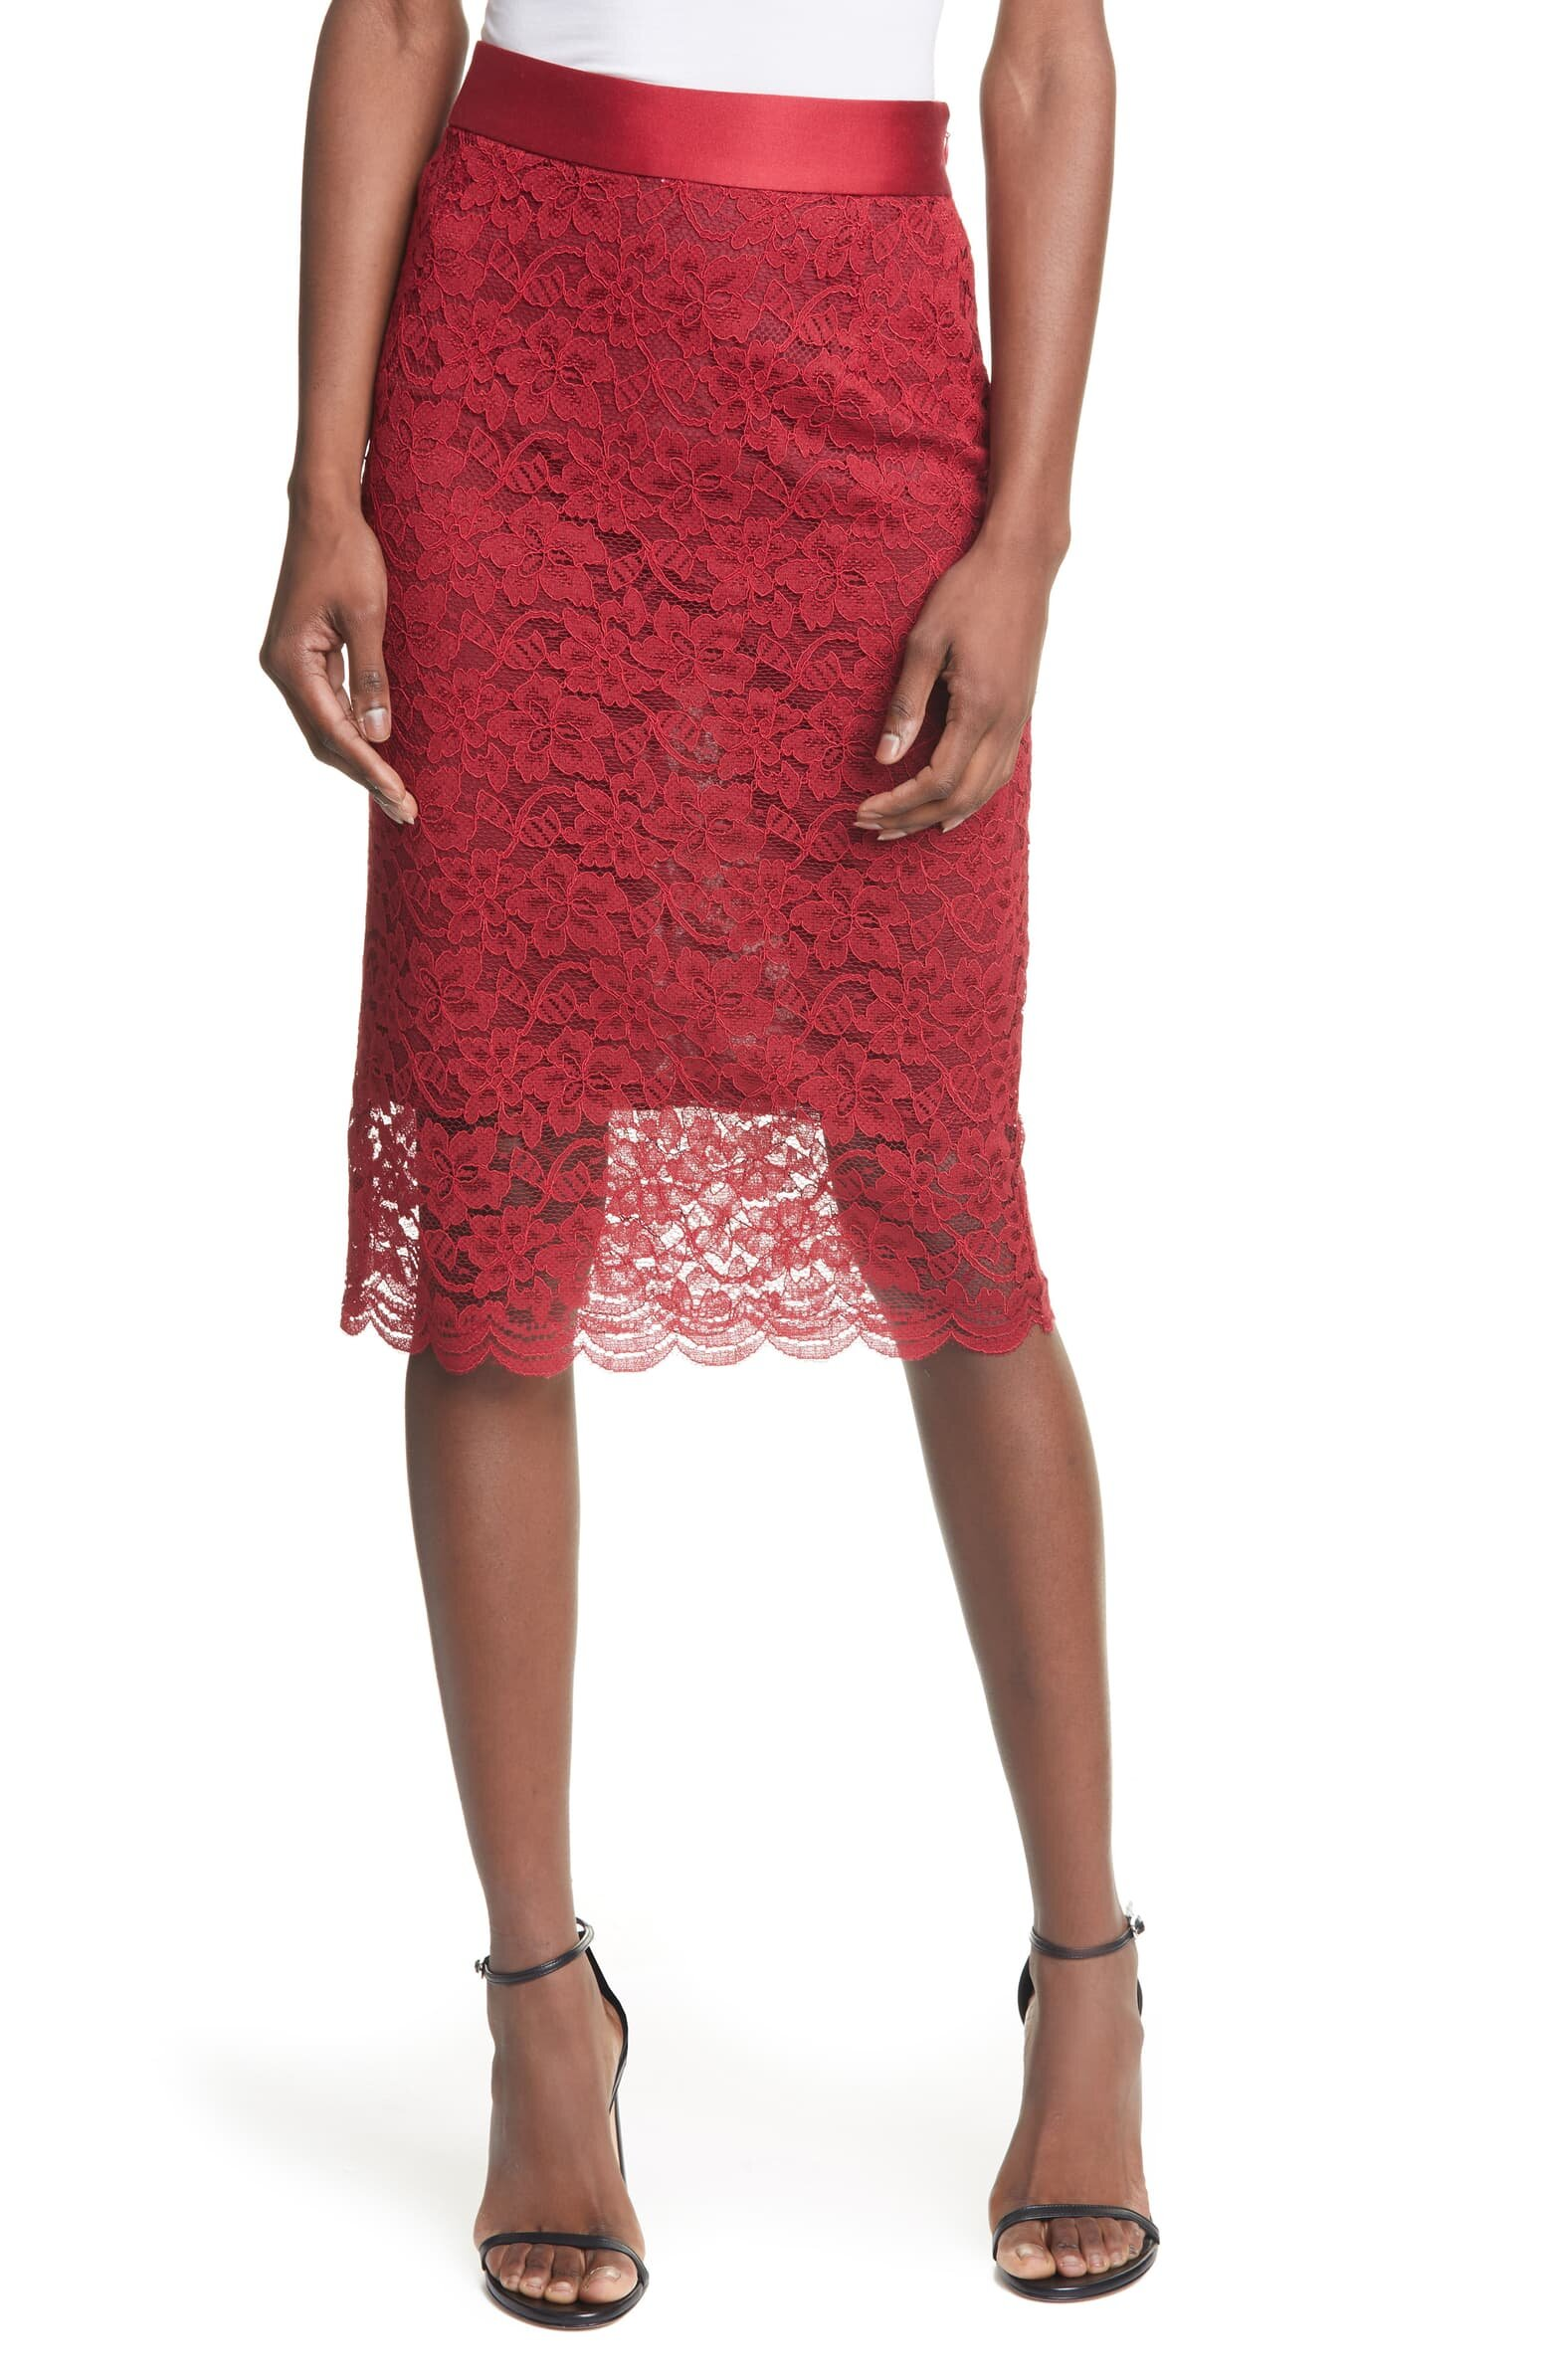 Nordstrom Red Lace Pencil Skirt